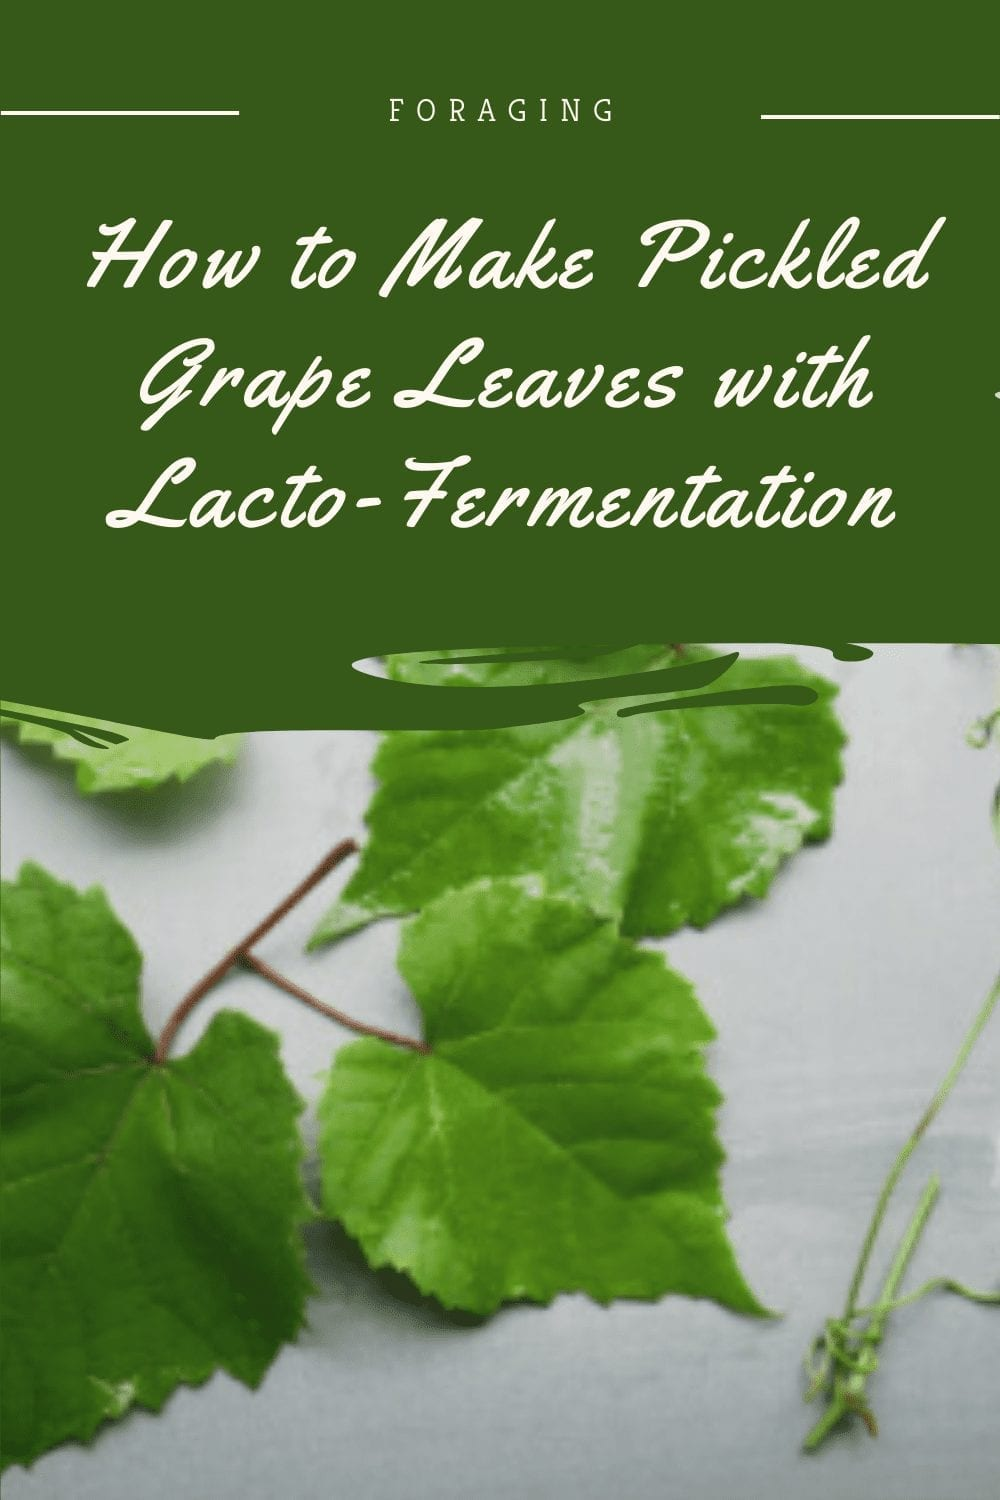 How to Make Pickled Grape Leaves with Lacto-Fermentation